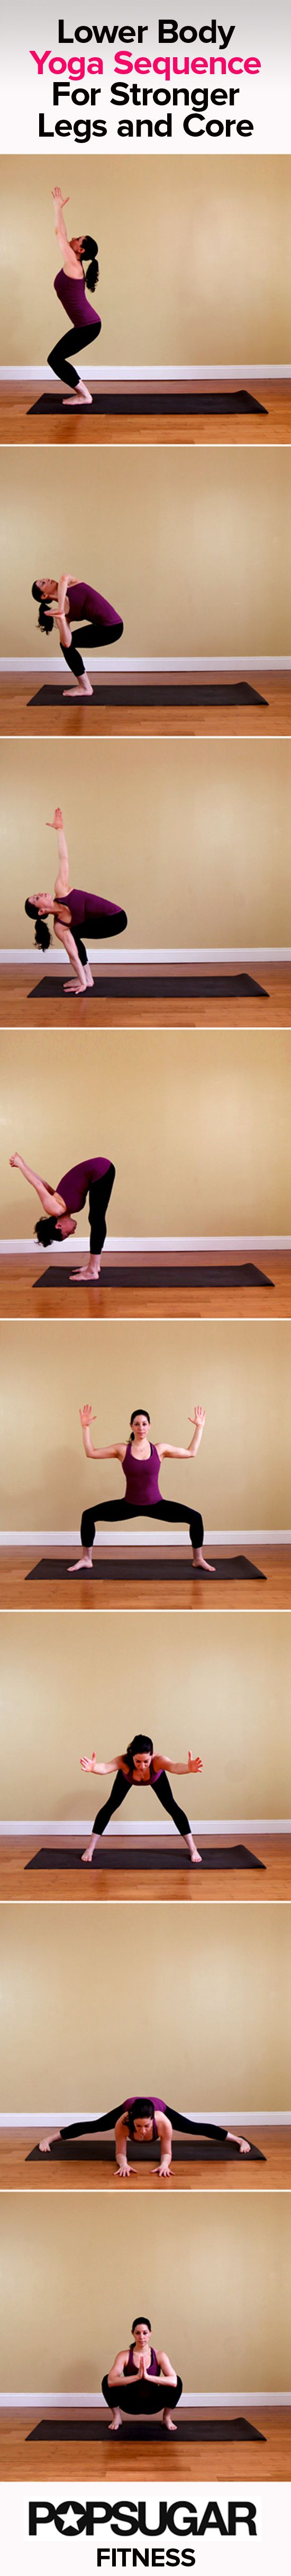 Make the right move even in basic yoga posture. why? building your